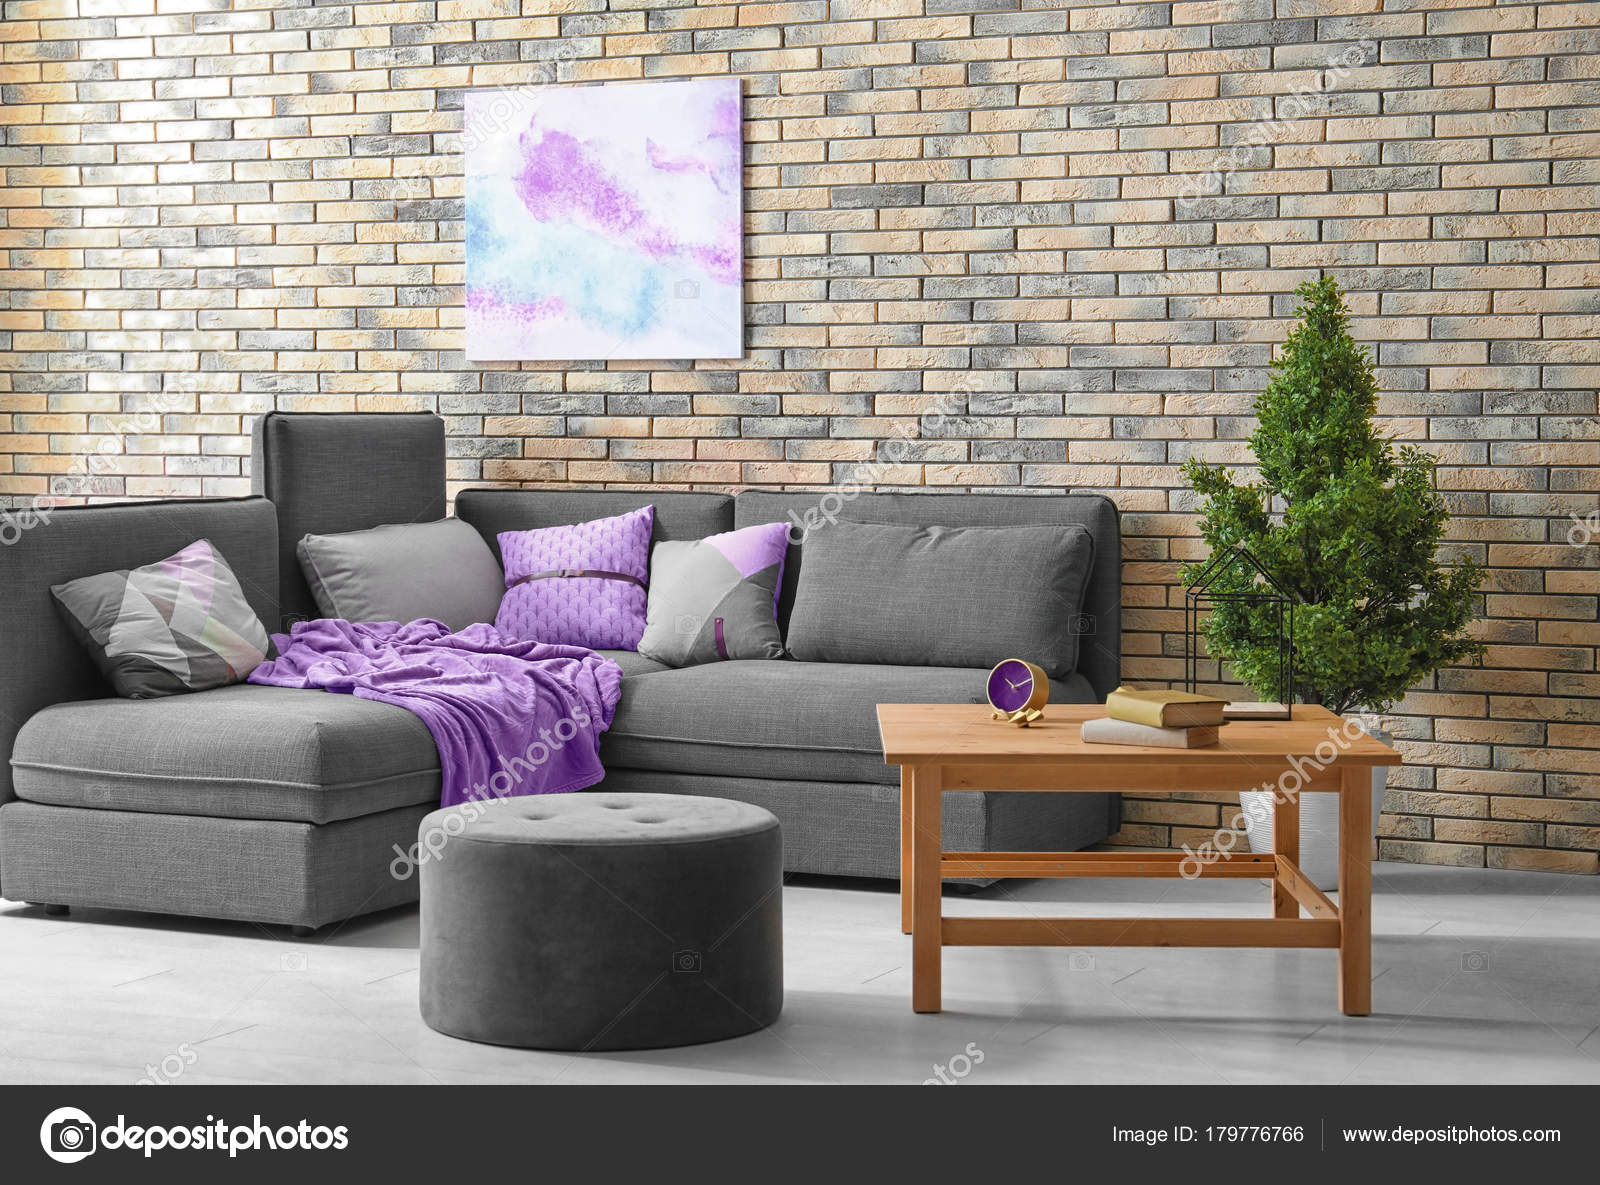 Modern Living Room Interior Comfortable Couch Grey Ottoman